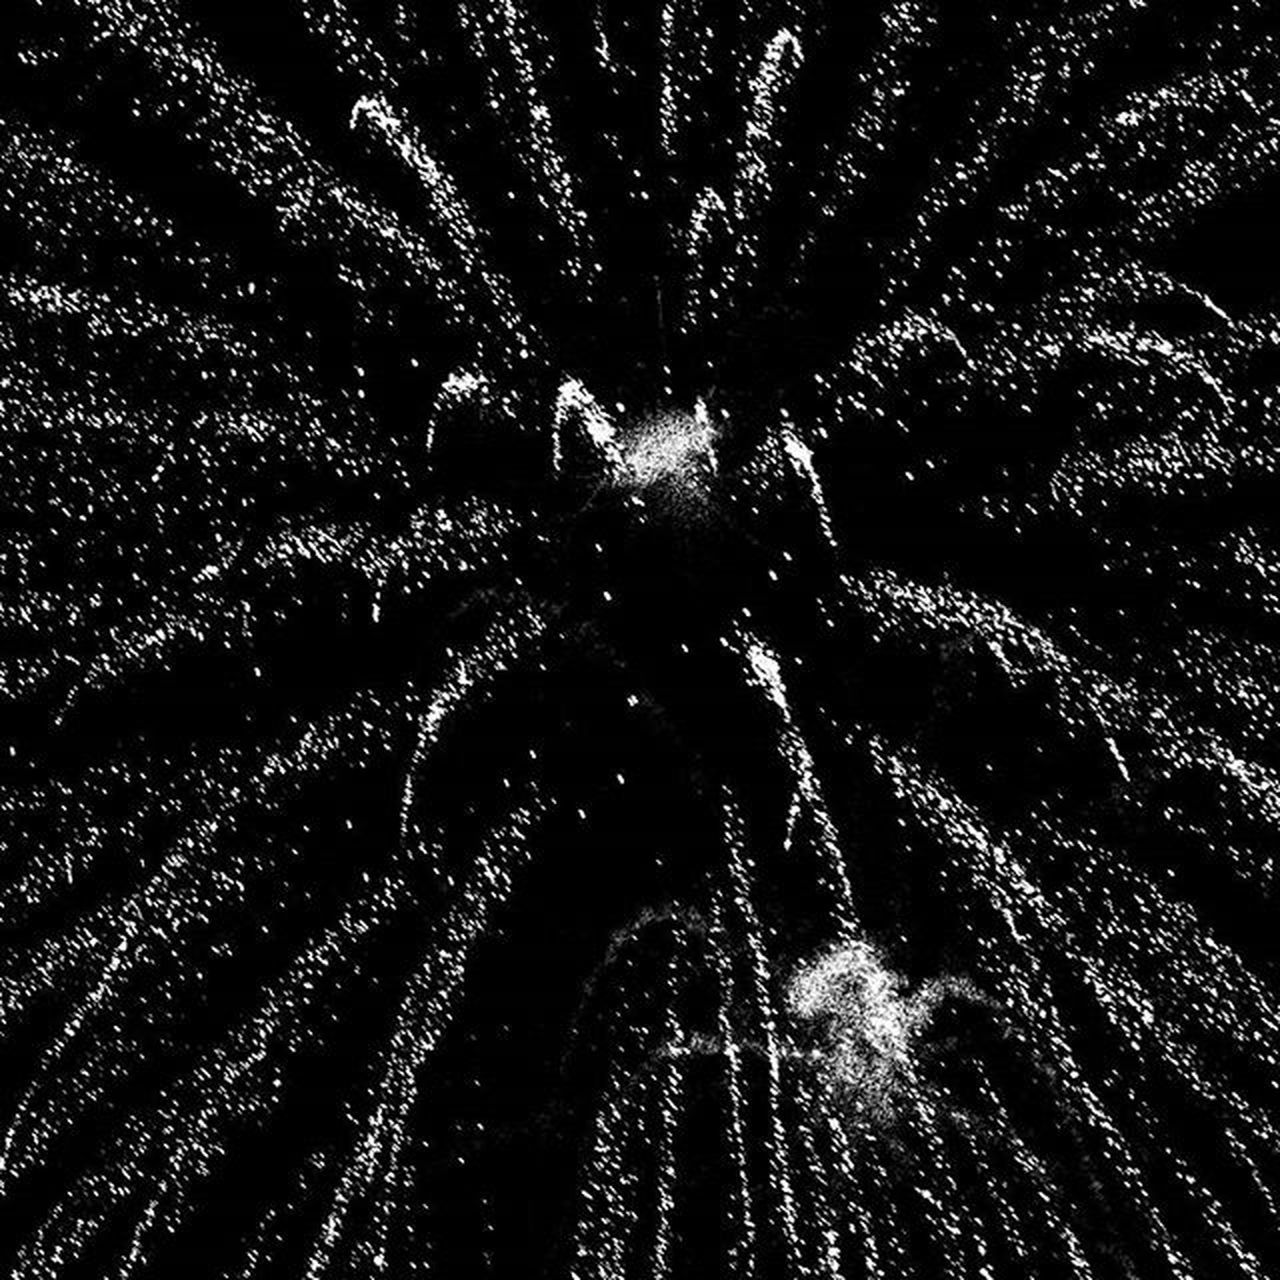 Fireworks Westerville Ohio July4th Blackandwhite Bnw_society Bw_lover Bw Blackandwhitephotography Insta_bw Monochrome Bw_8524